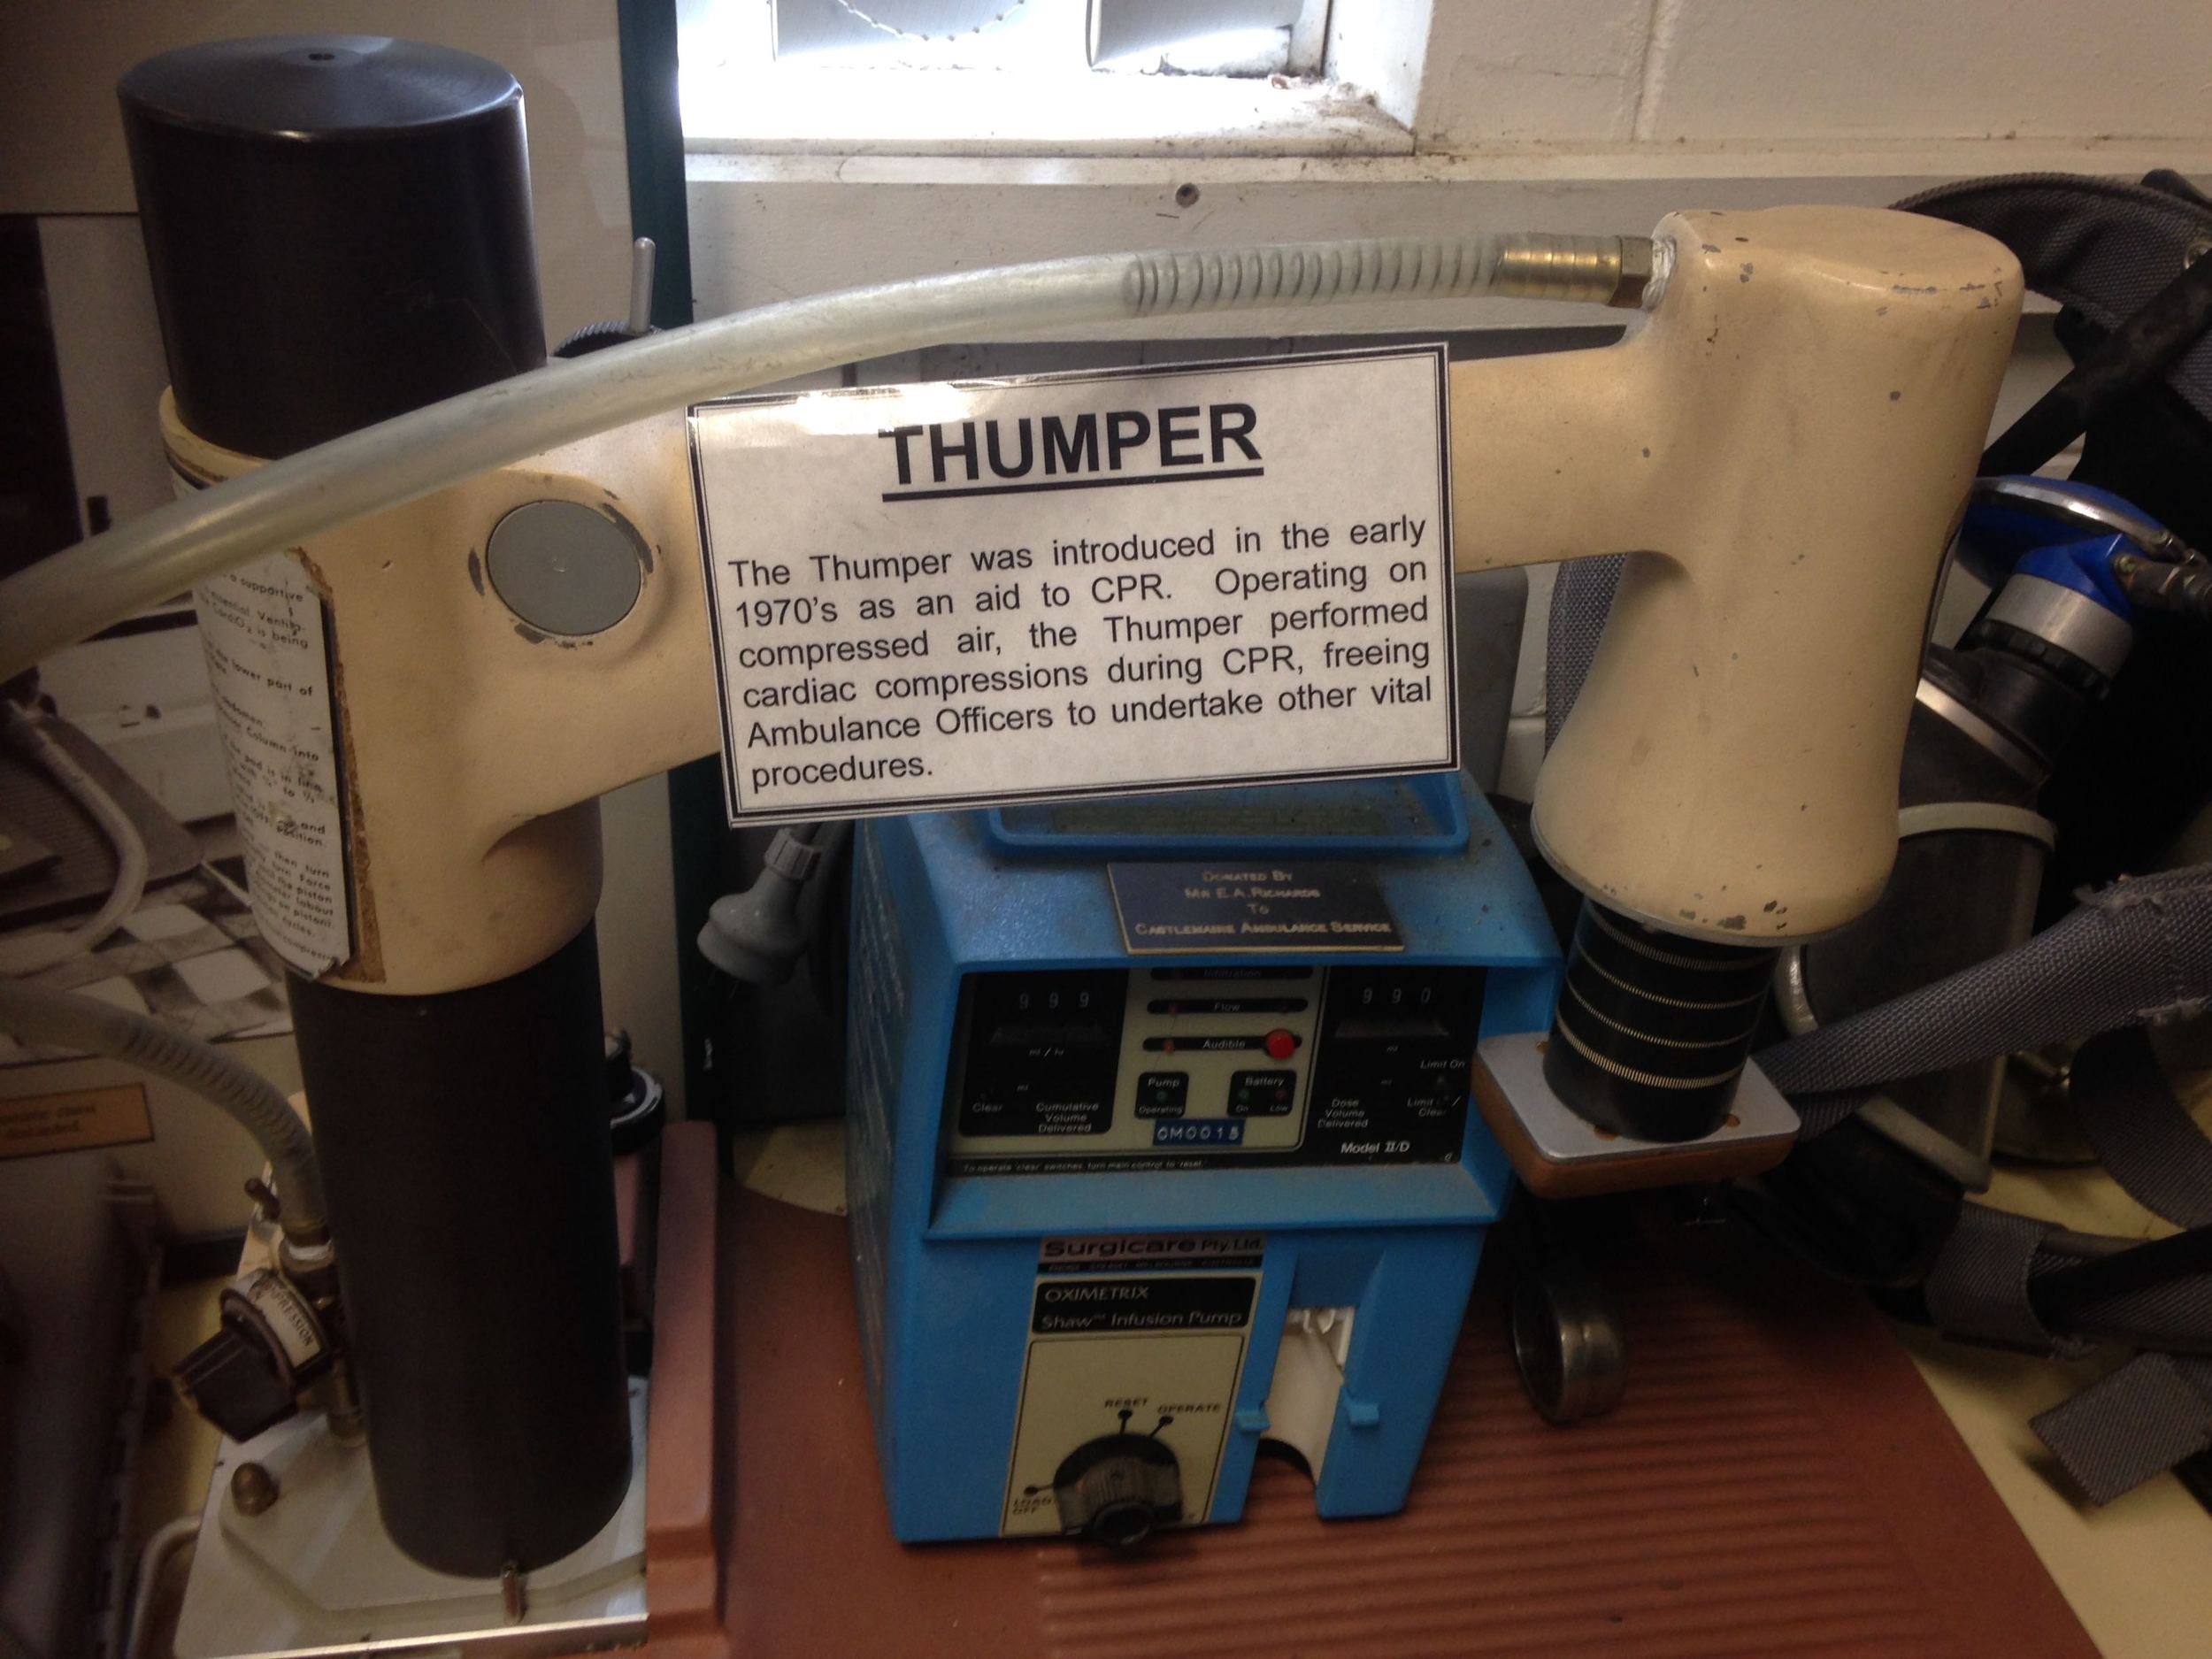 The Thumper was introduced in the early 1970s as an aid to CPR. Operating on compressed air, it performed cardiac compression during CPR, freeing Ambulance Officers to undertake other vital procedures